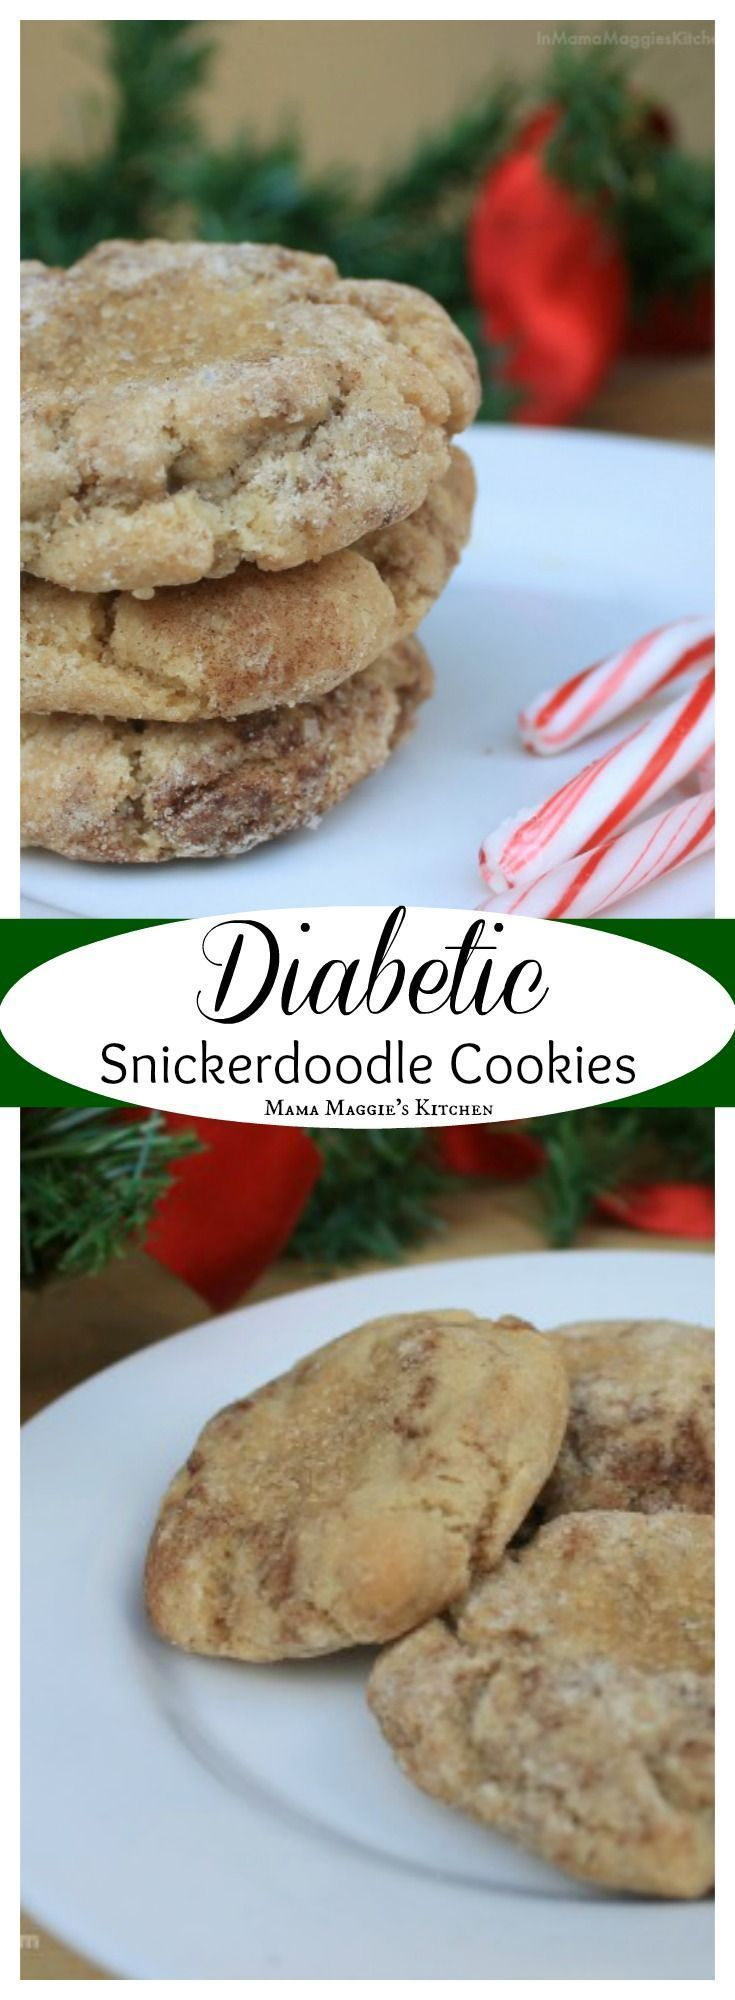 Diabetic Snickerdoodle Cookies - low carb and delicious cookies. Perfect sweet treat to take to those who are watching their carbohydrates during the holidays. By Mama Maggie's Kitchen